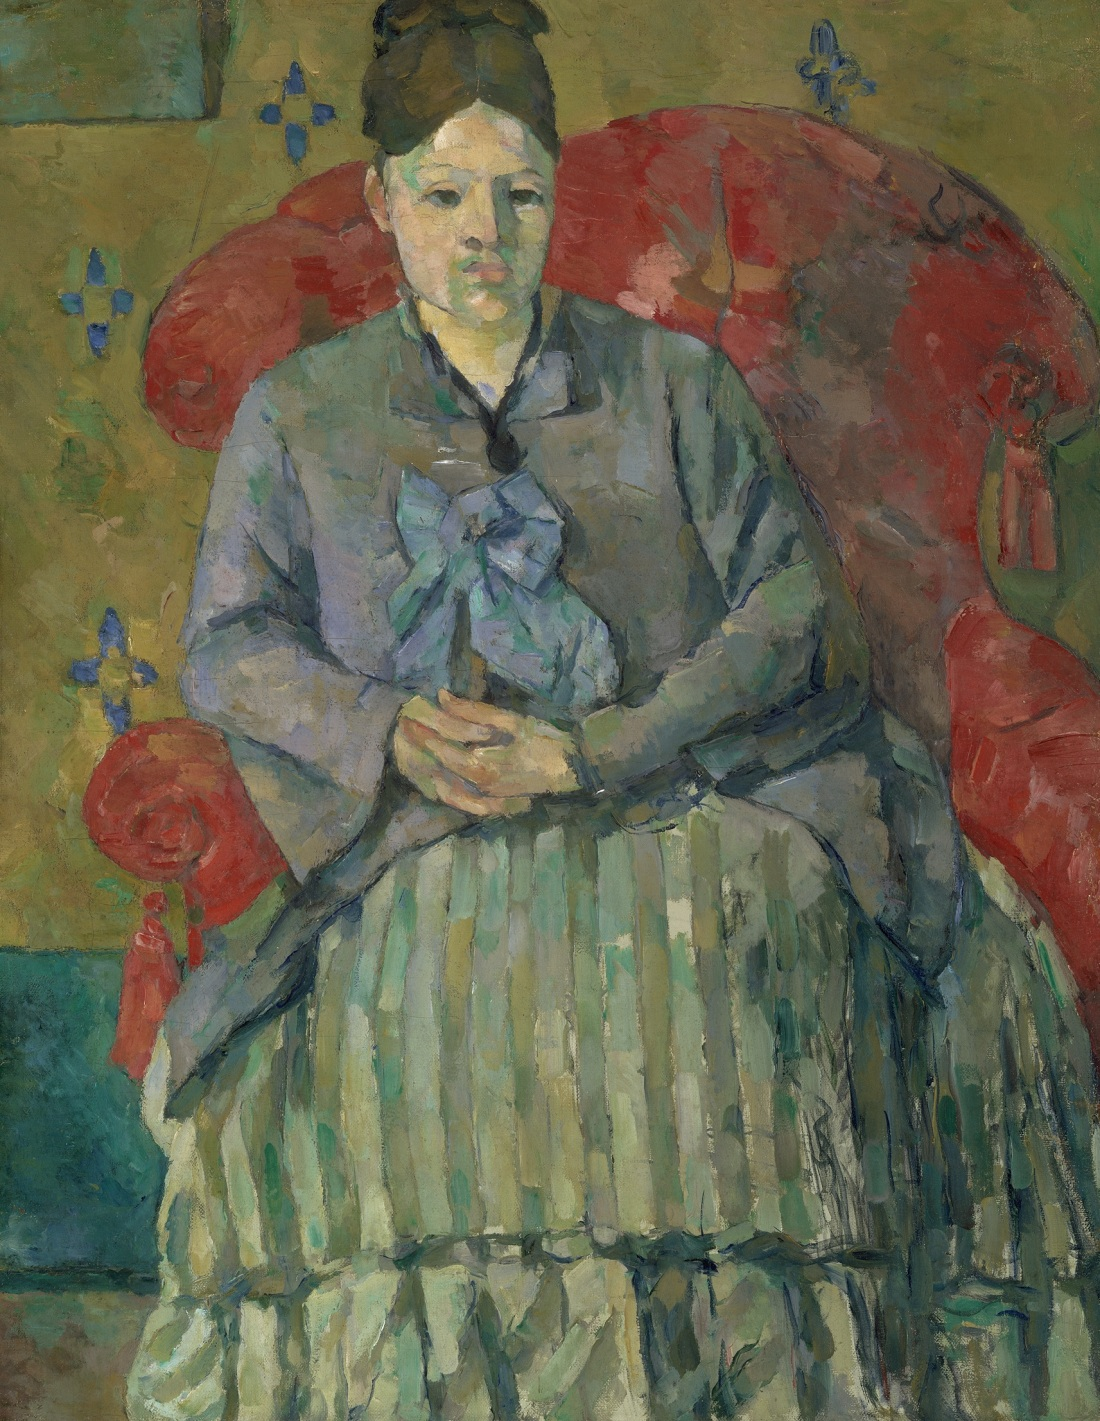 Paul Cezanne, Madame Cezanne in a Red Armchair, ca. 1877. Collection of the Museum of Fine Arts, Boston.